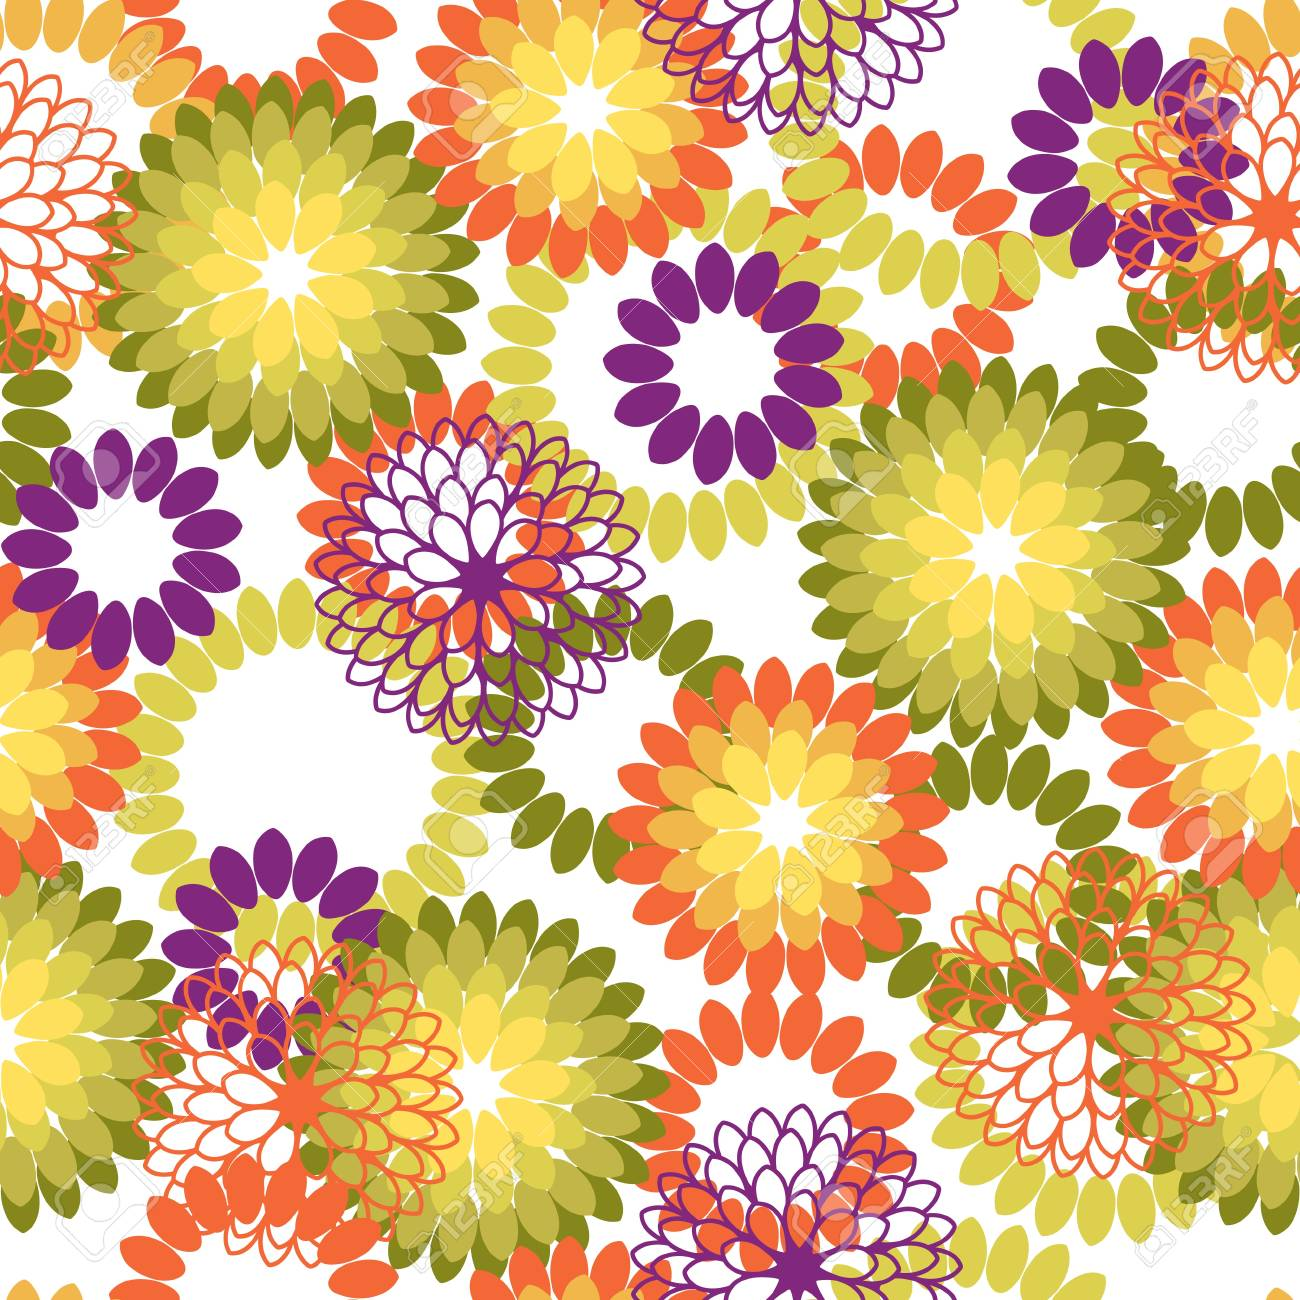 Seamless pattern with abstract flowers  Vector illustration Stock Vector - 14388793